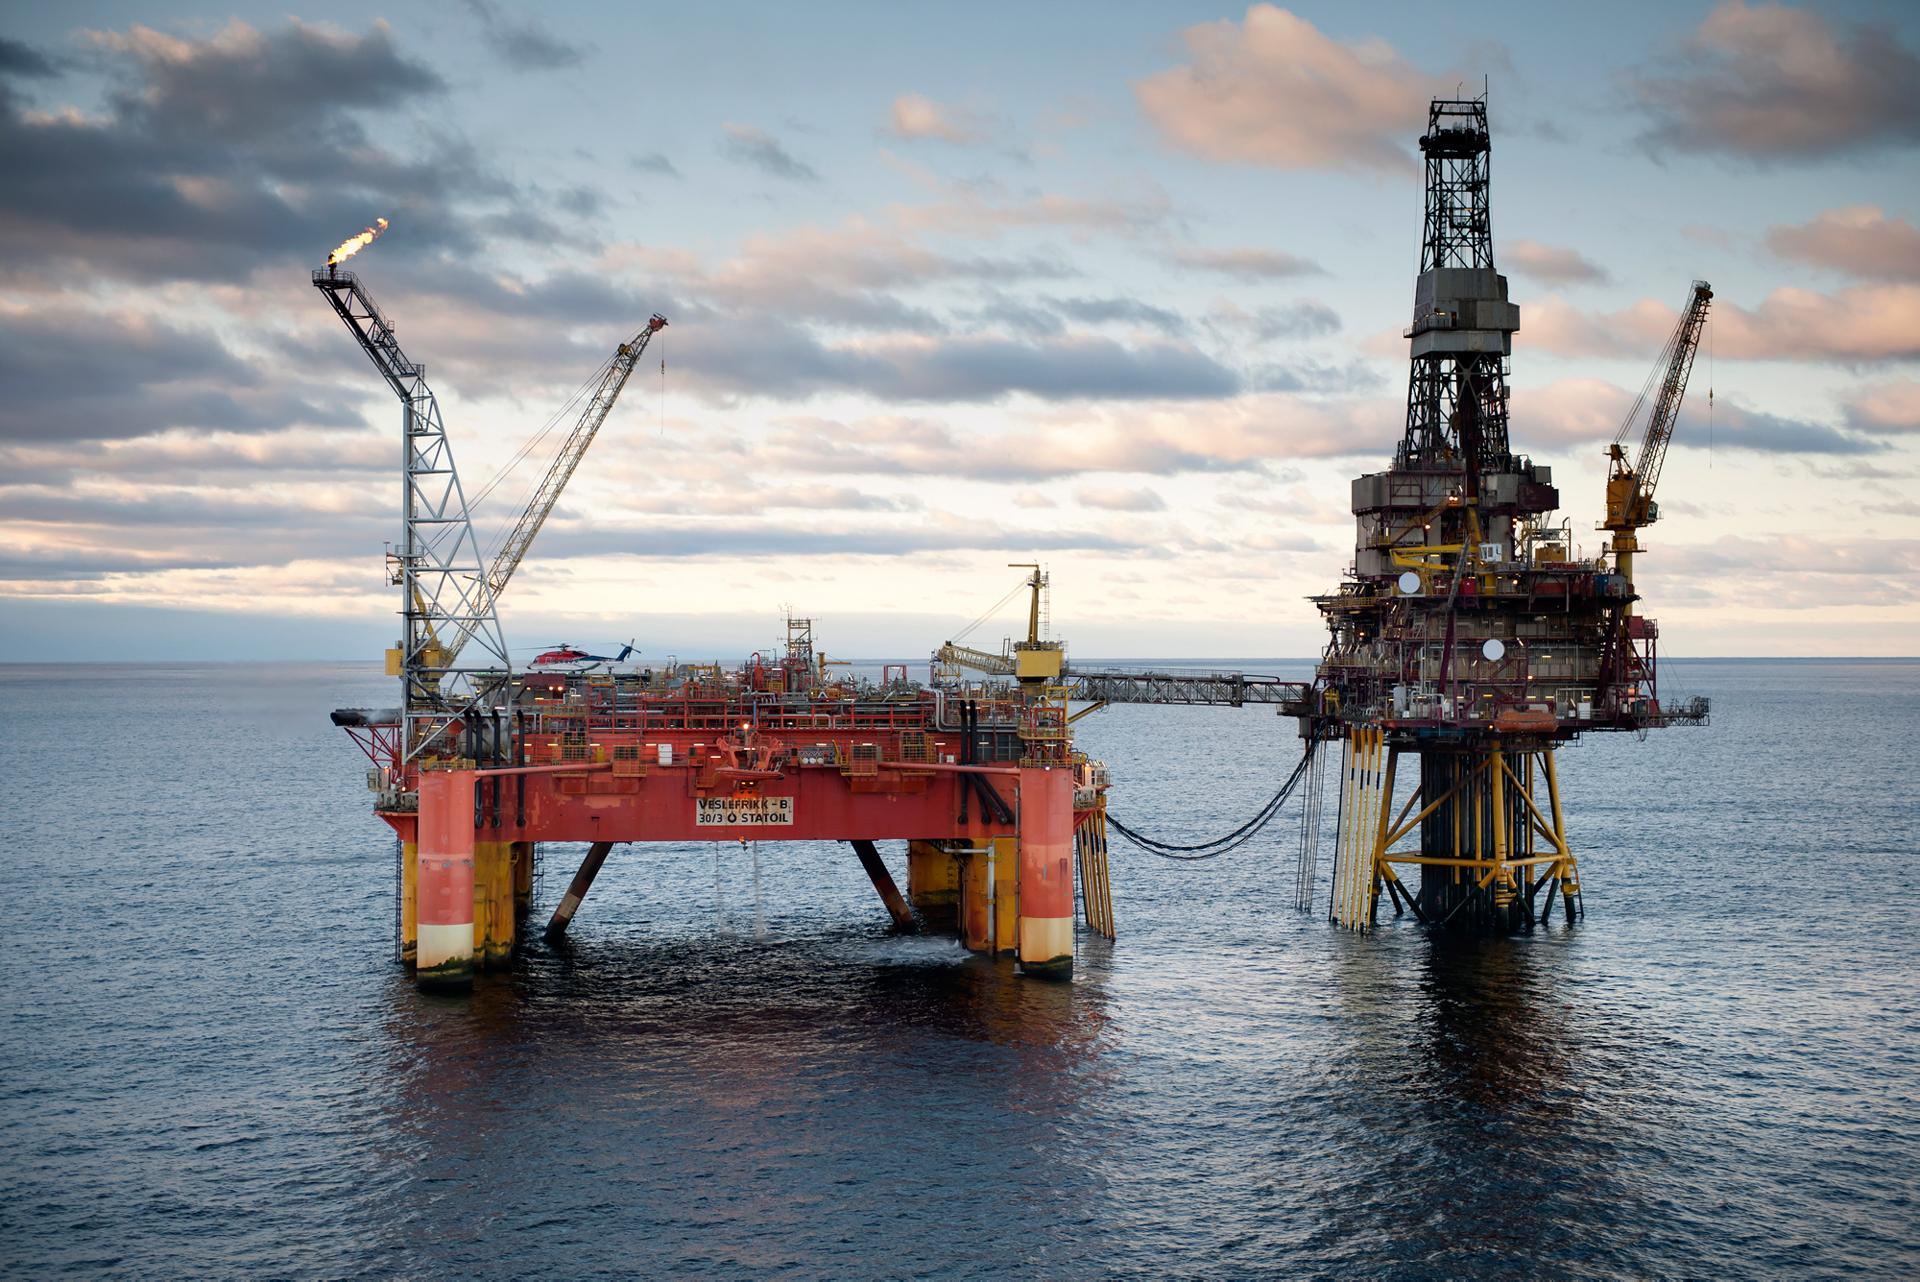 Well Plugging Starts in Pioneering North Sea Field